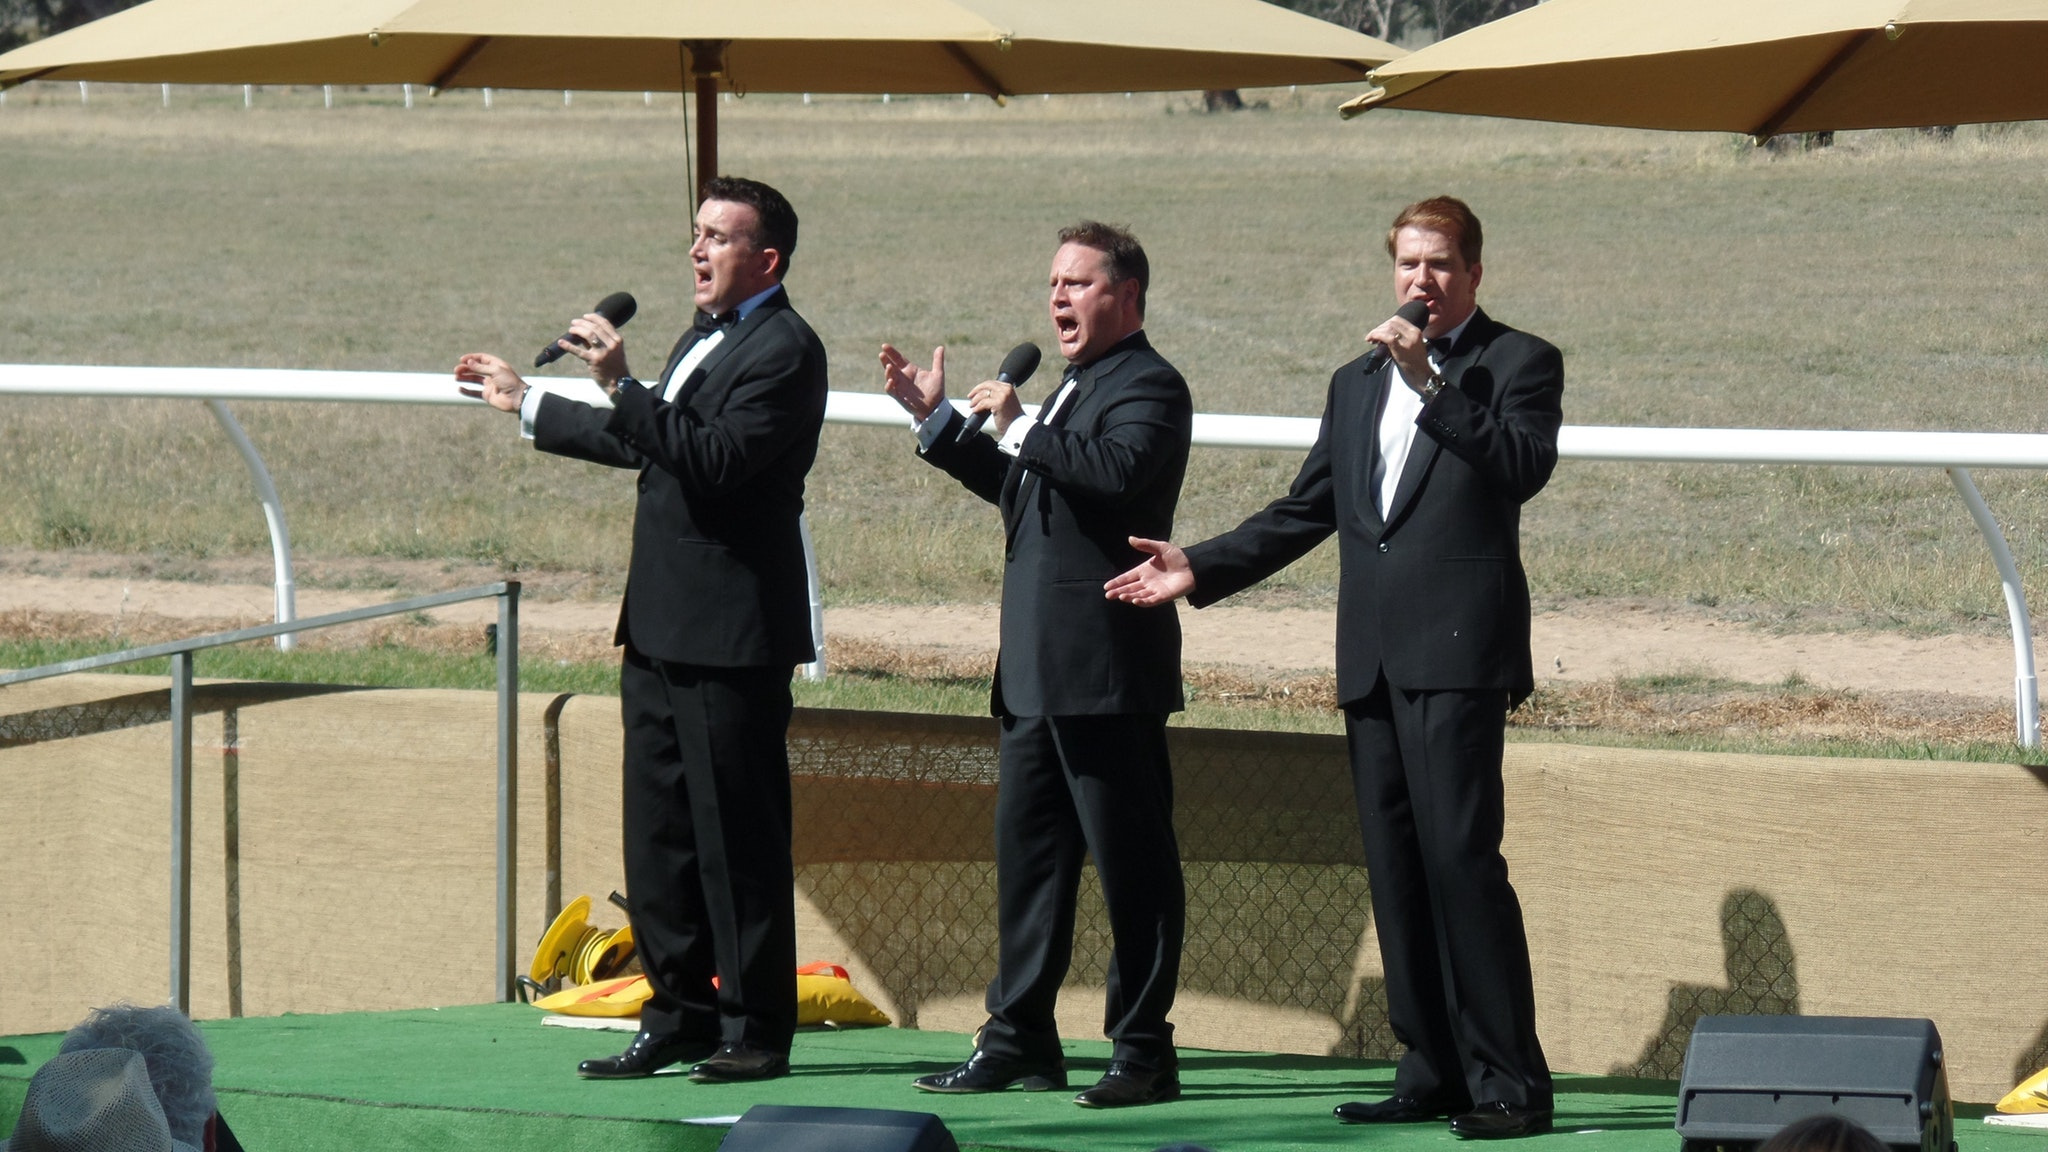 Tenors on the Turf